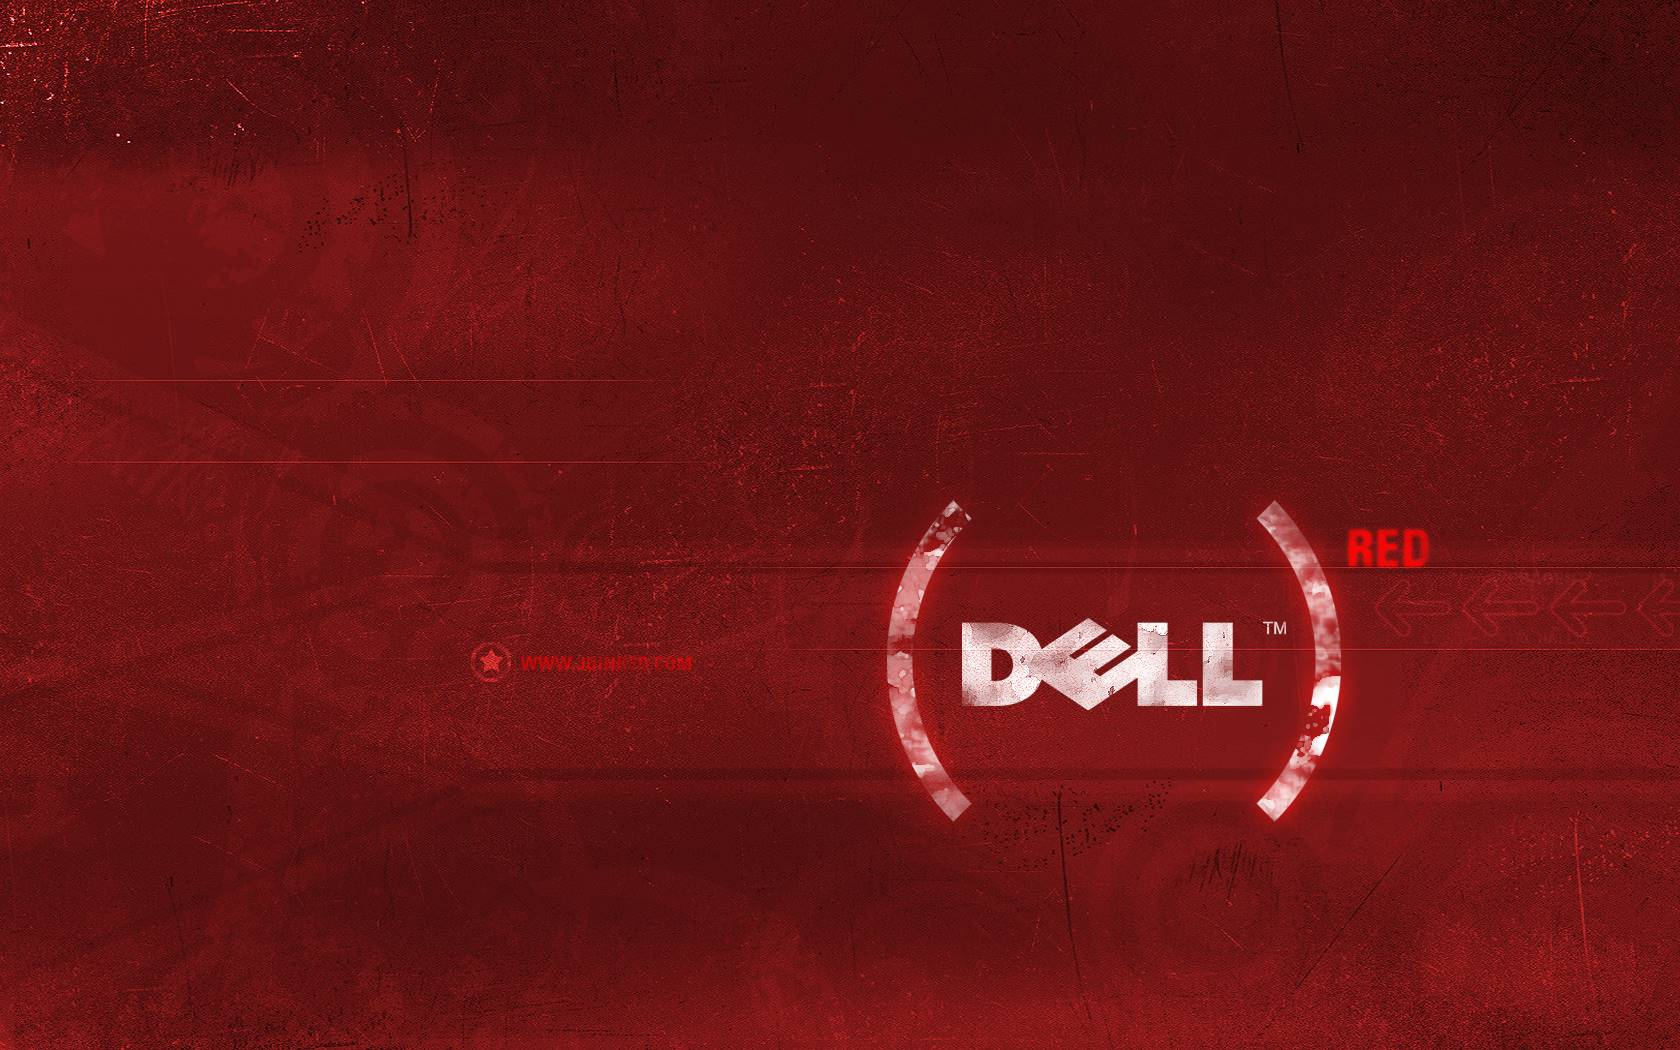 Download High Quality Dell Wallpapers   Desktop Wallpapers Blogs PC 1680x1050